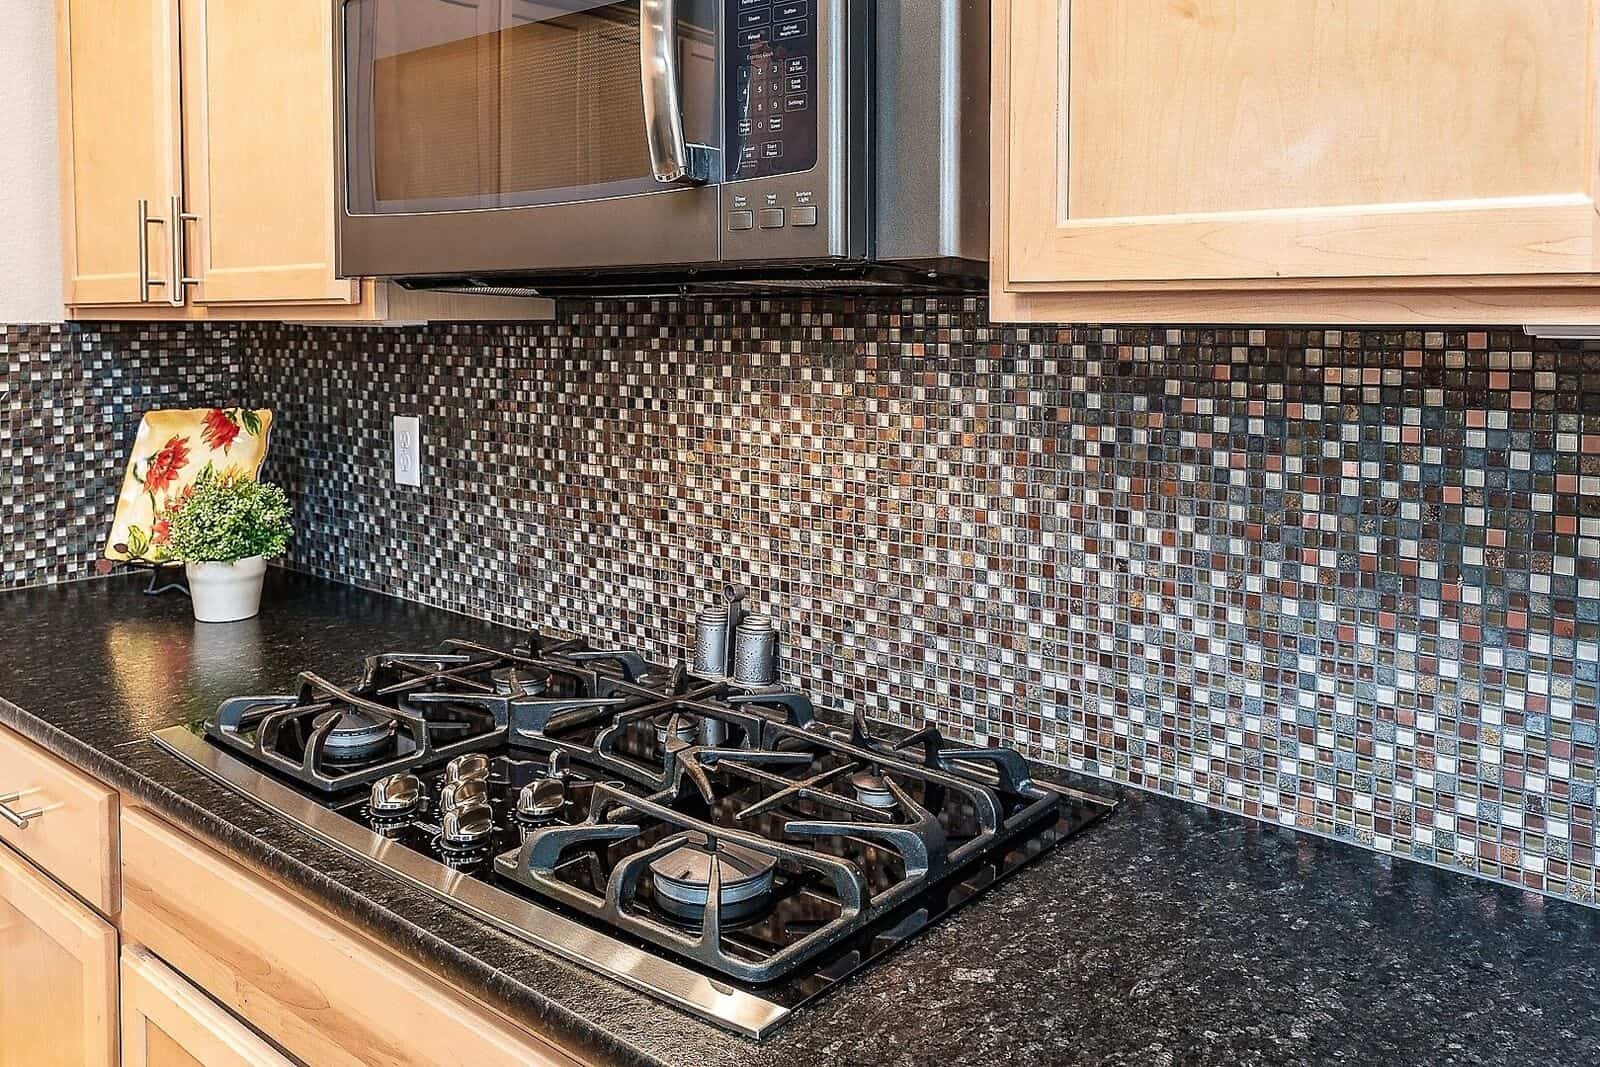 Slate Finish 5-Burner Gas Cooktop and Built-In Microwave